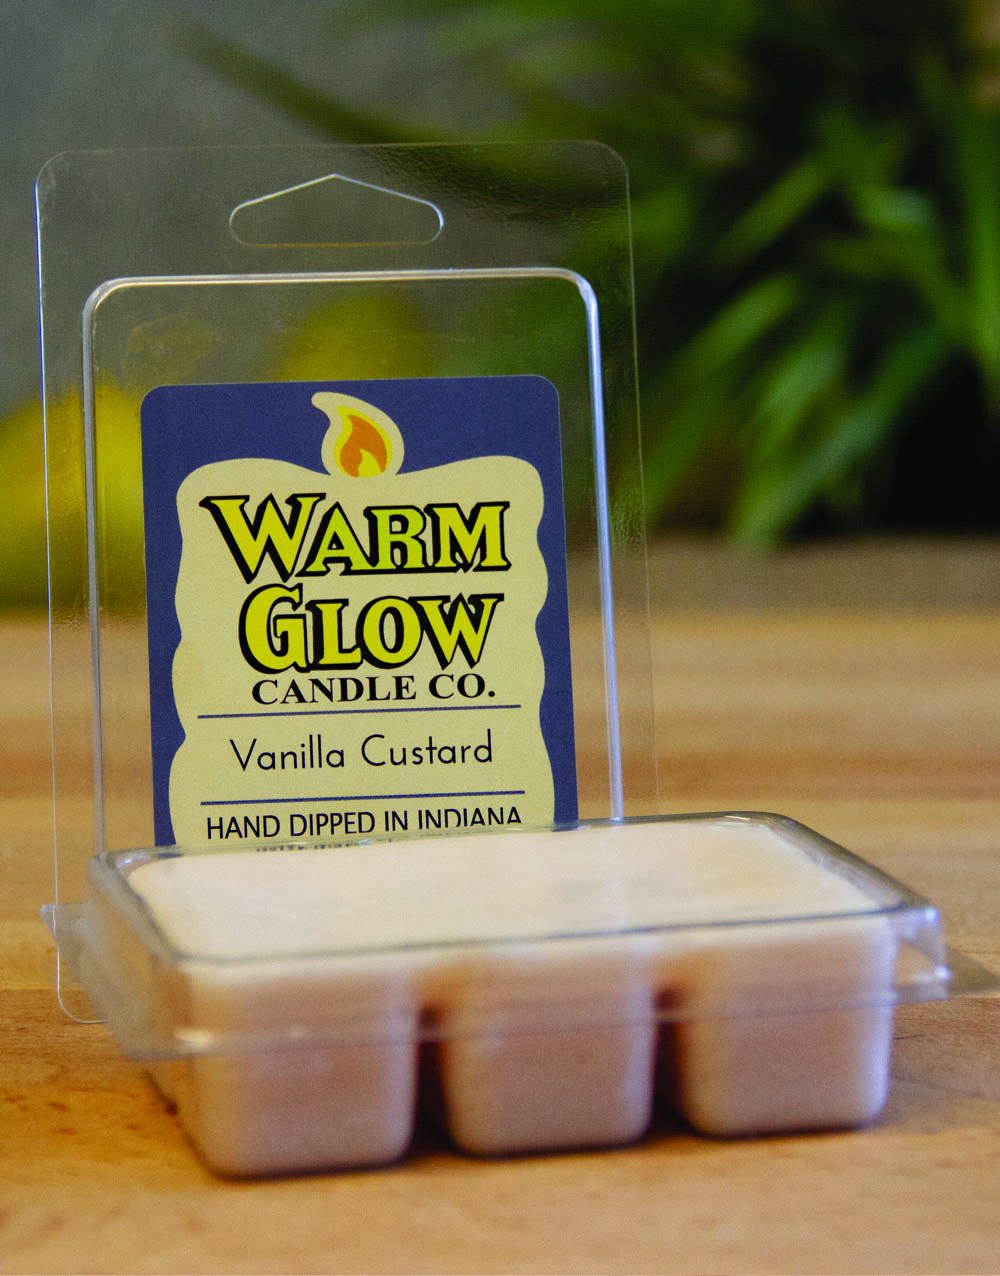 Vanilla Custard wax melts